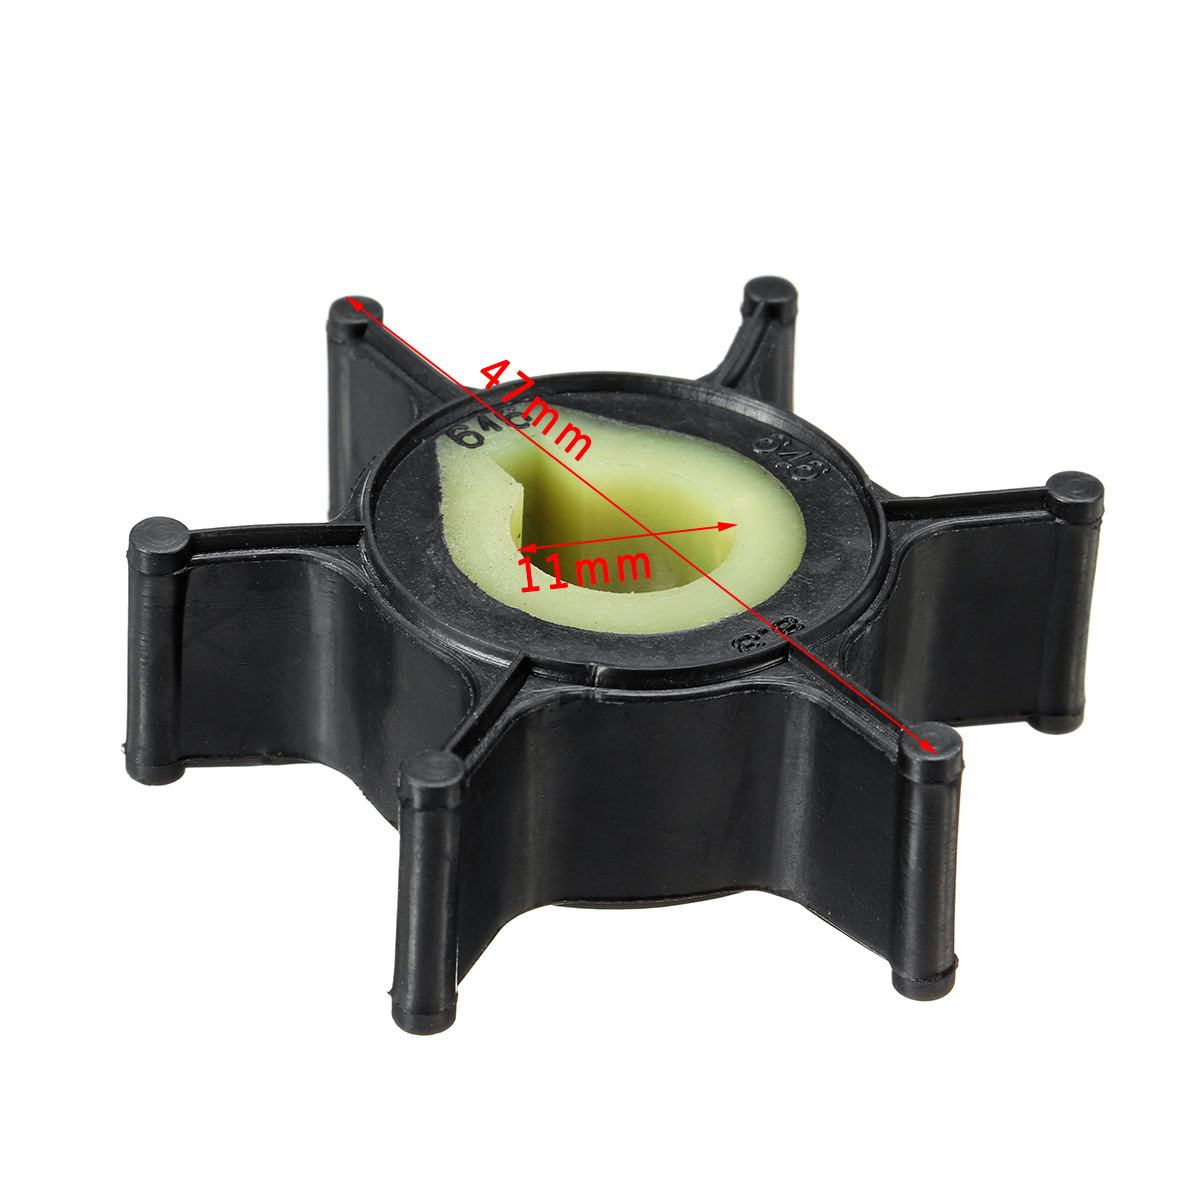 Boat <font><b>Outboard</b></font> <font><b>Motor</b></font> 646-44352-01 Replacement Water Pump Impeller for <font><b>Yamaha</b></font> <font><b>2HP</b></font> for Sierra 18-3072 Rubber for Mariner 47-80395M image